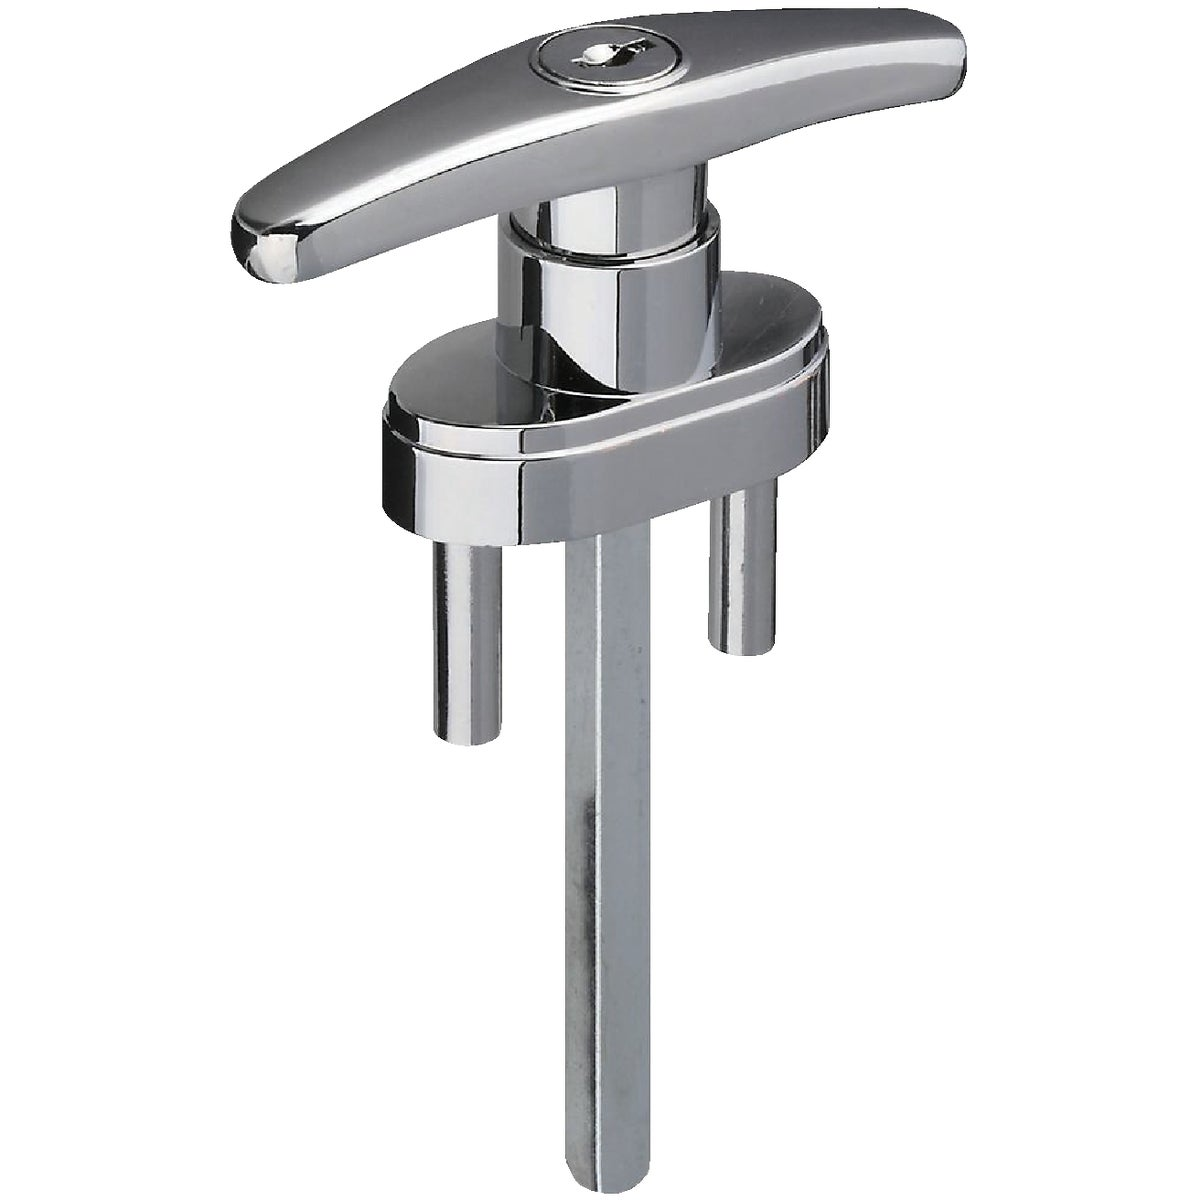 CHROME LOCKING T-HANDLE - N280677 by National Mfg Co